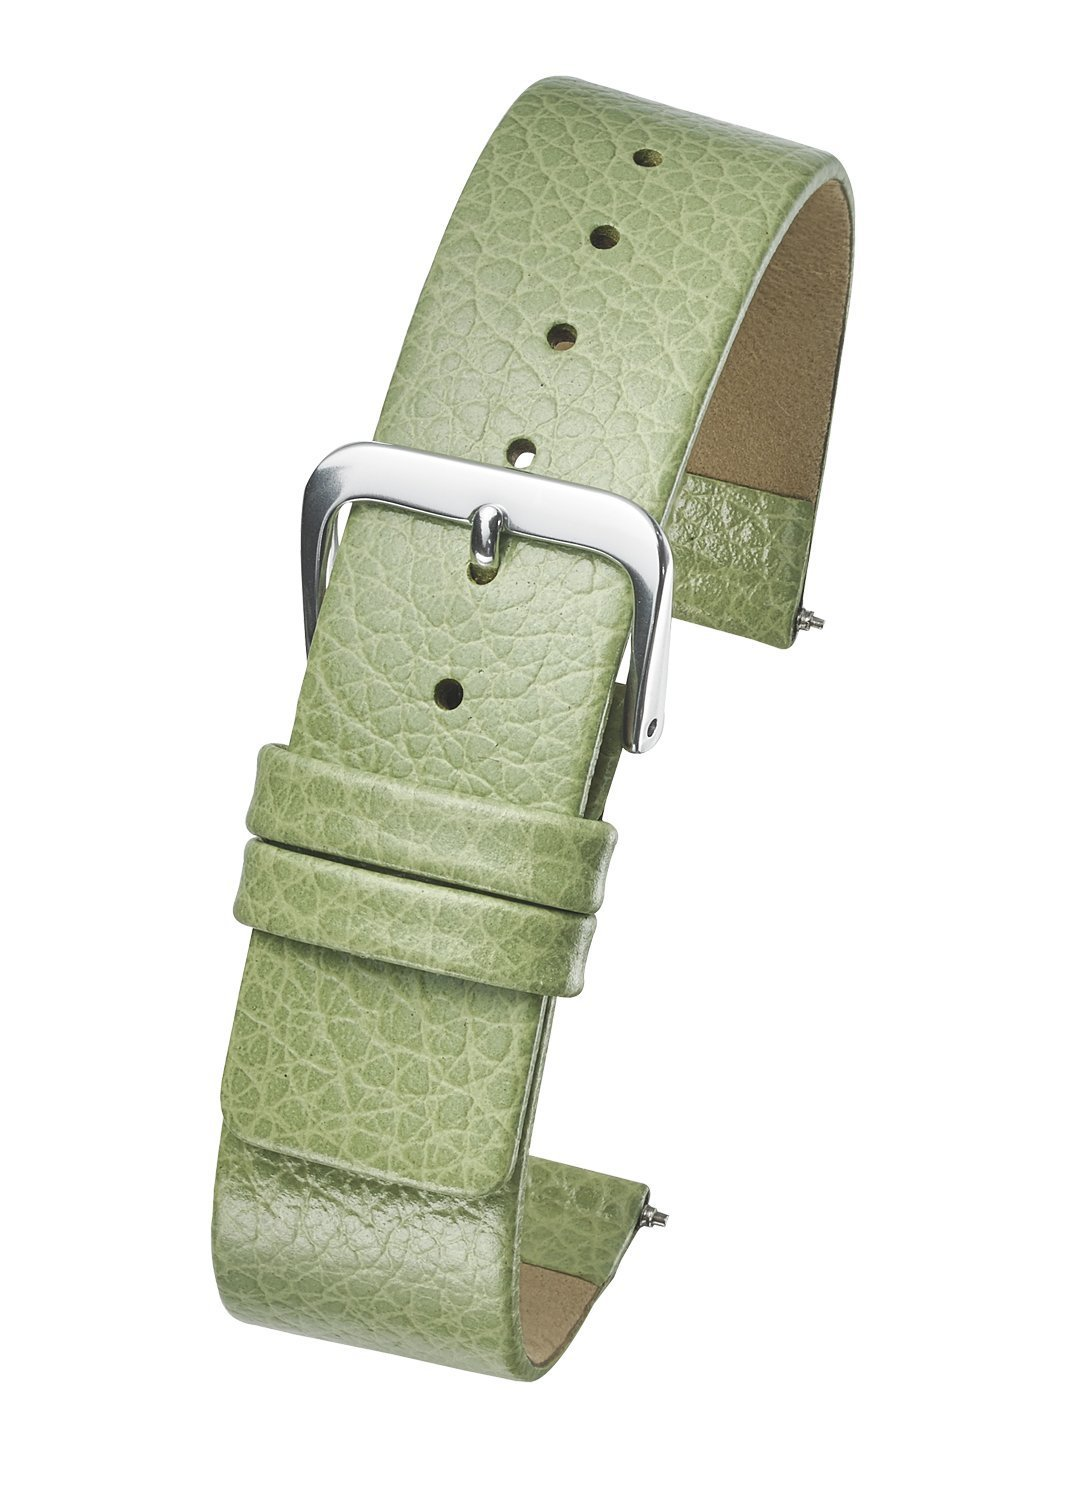 Genuine Leather Watch Band - Smooth Flat Leather Watch Strap 16mm - Green